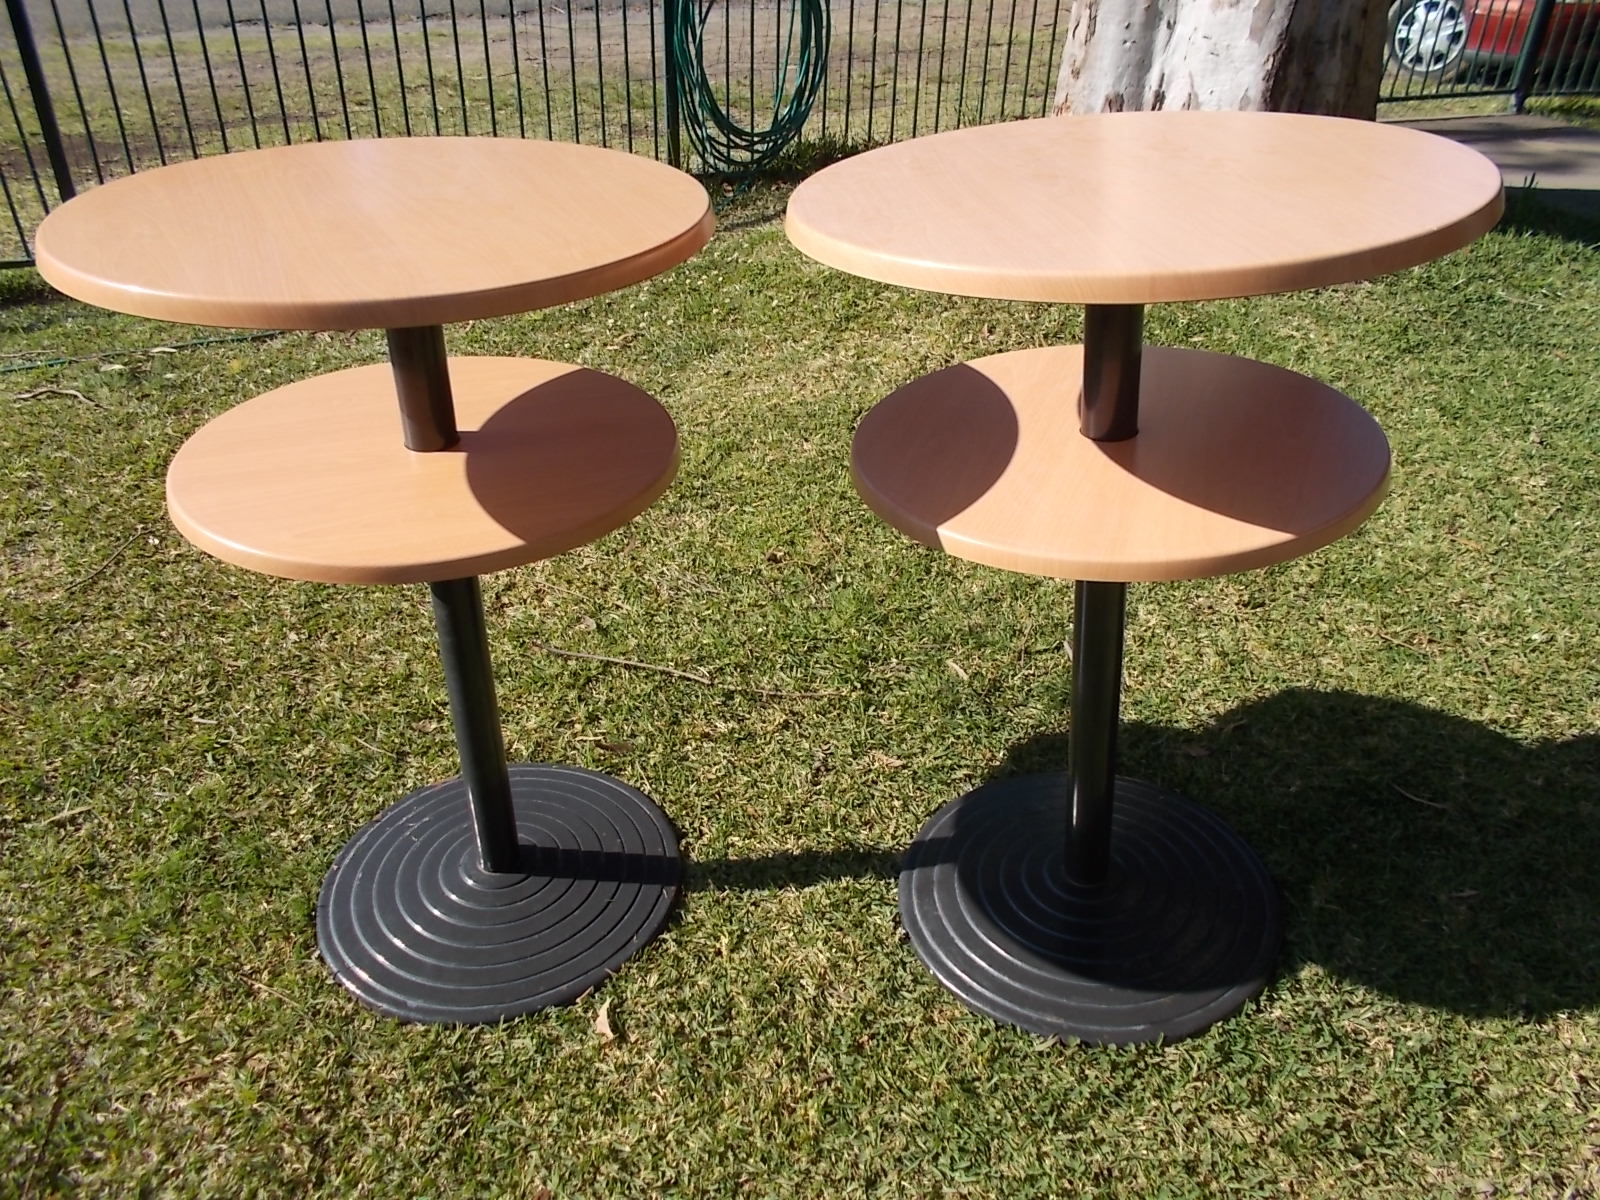 100 Second Hand Cafe Tables Chairs Sale Melbourne  : ttab2x275 from mitzissister.com size 1600 x 1200 jpeg 532kB